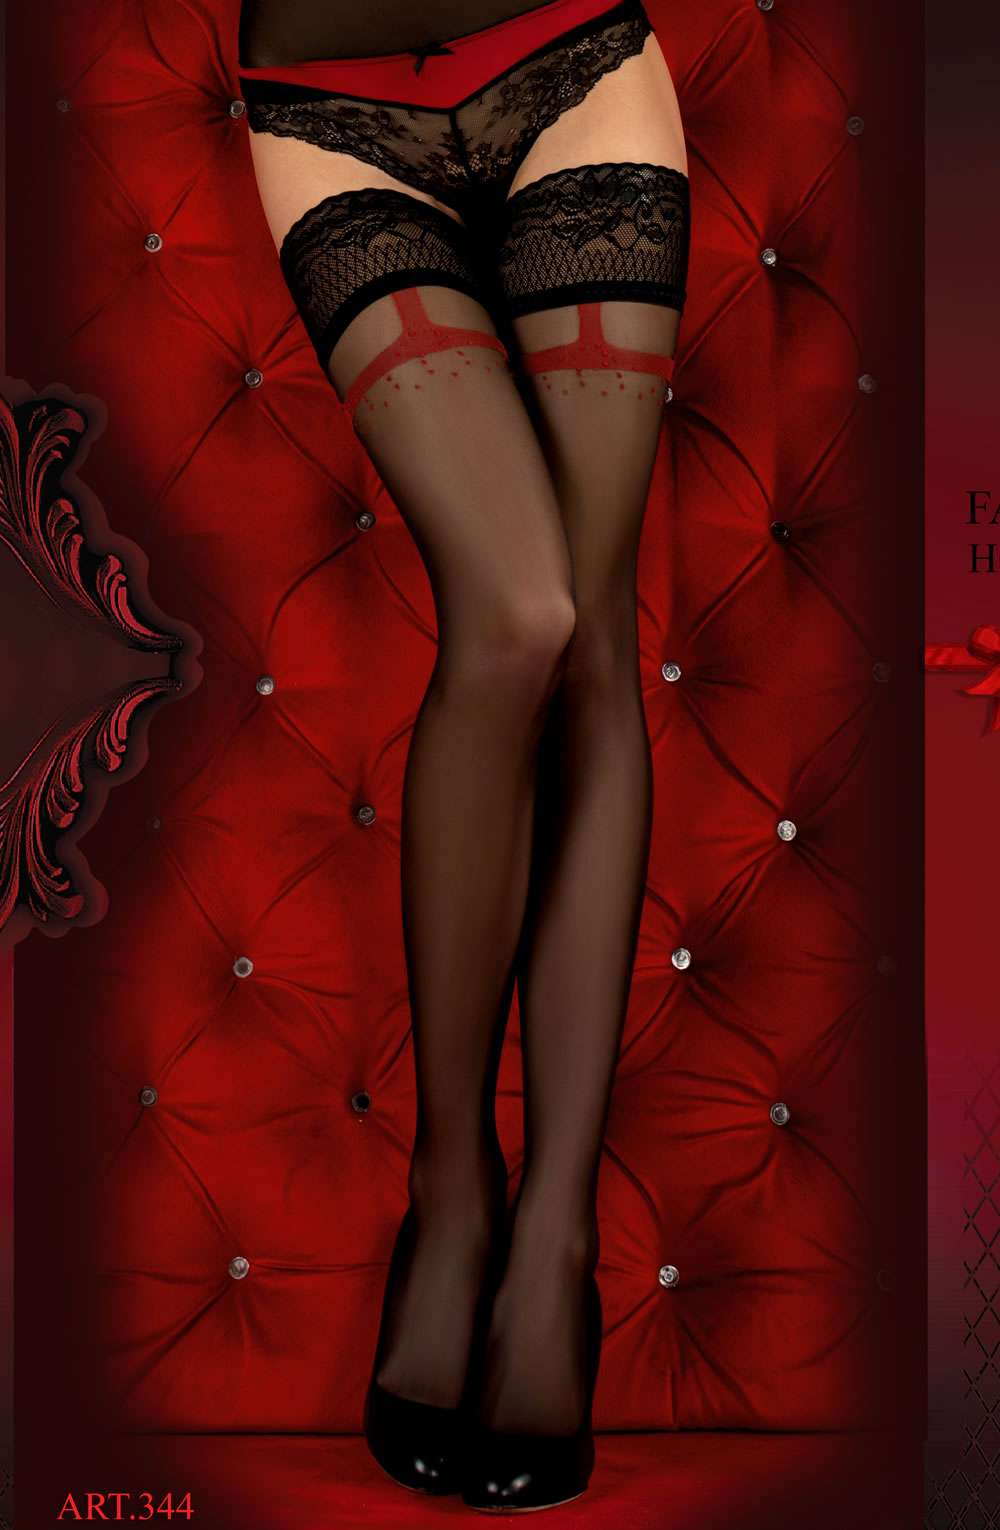 BALLERINA 3 Hold Ups NERO/RED  Ballerina, Hold Ups, Hosiery, NEWLY-IMPORTED, Our TOP Valentine's Gifts!, Valentine, Valentines - So Luxe Lingerie